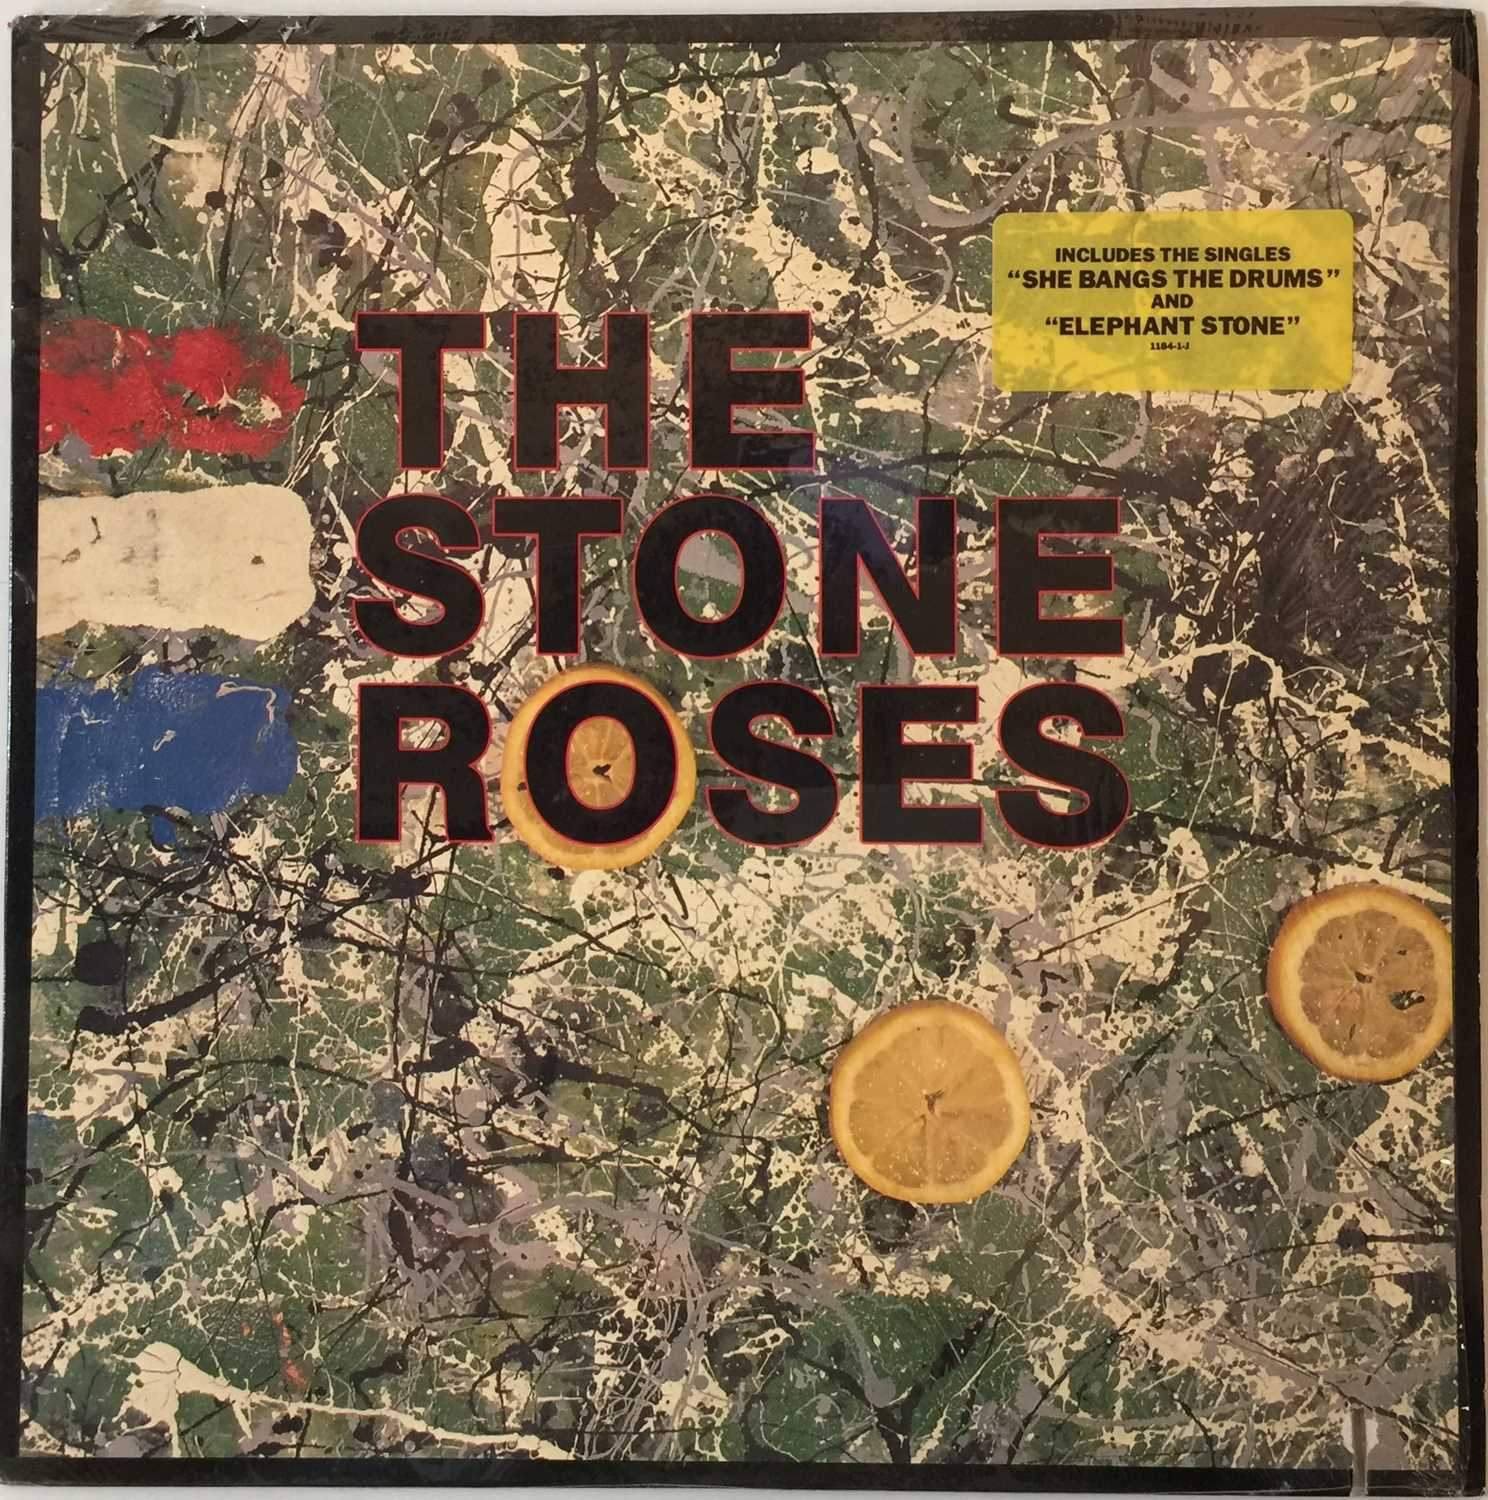 THE STONE ROSES - THE STONE ROSES LP (COMPLETE OG US COPY WITH PRESS RELEASE - SILVERTONE 1184-1-J) - Image 2 of 6